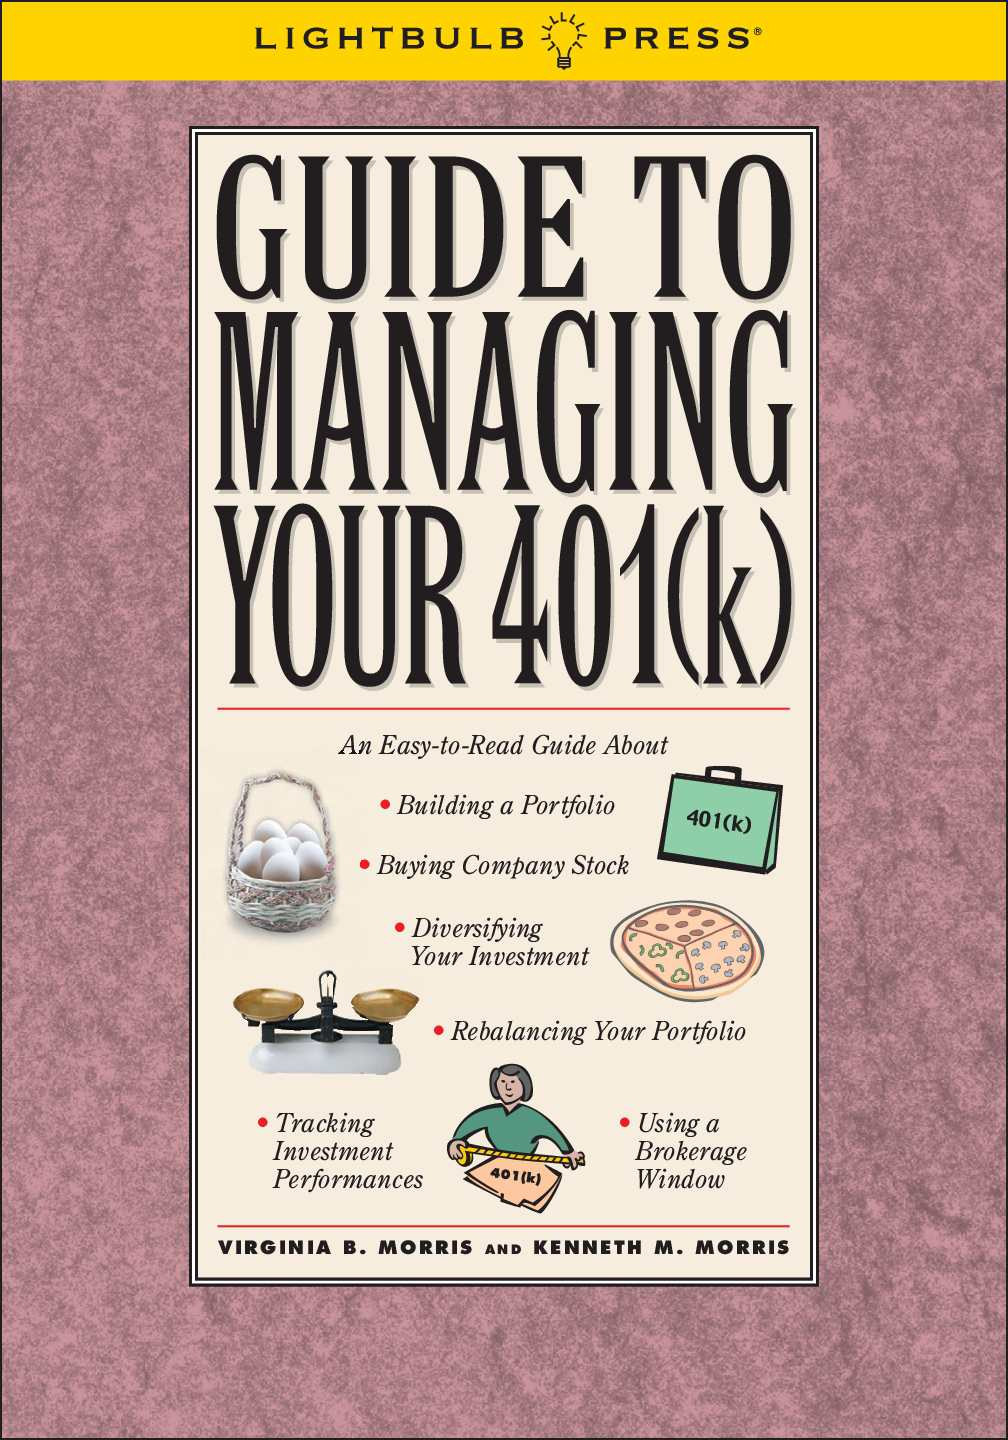 Guide To Managing Your 401(k)